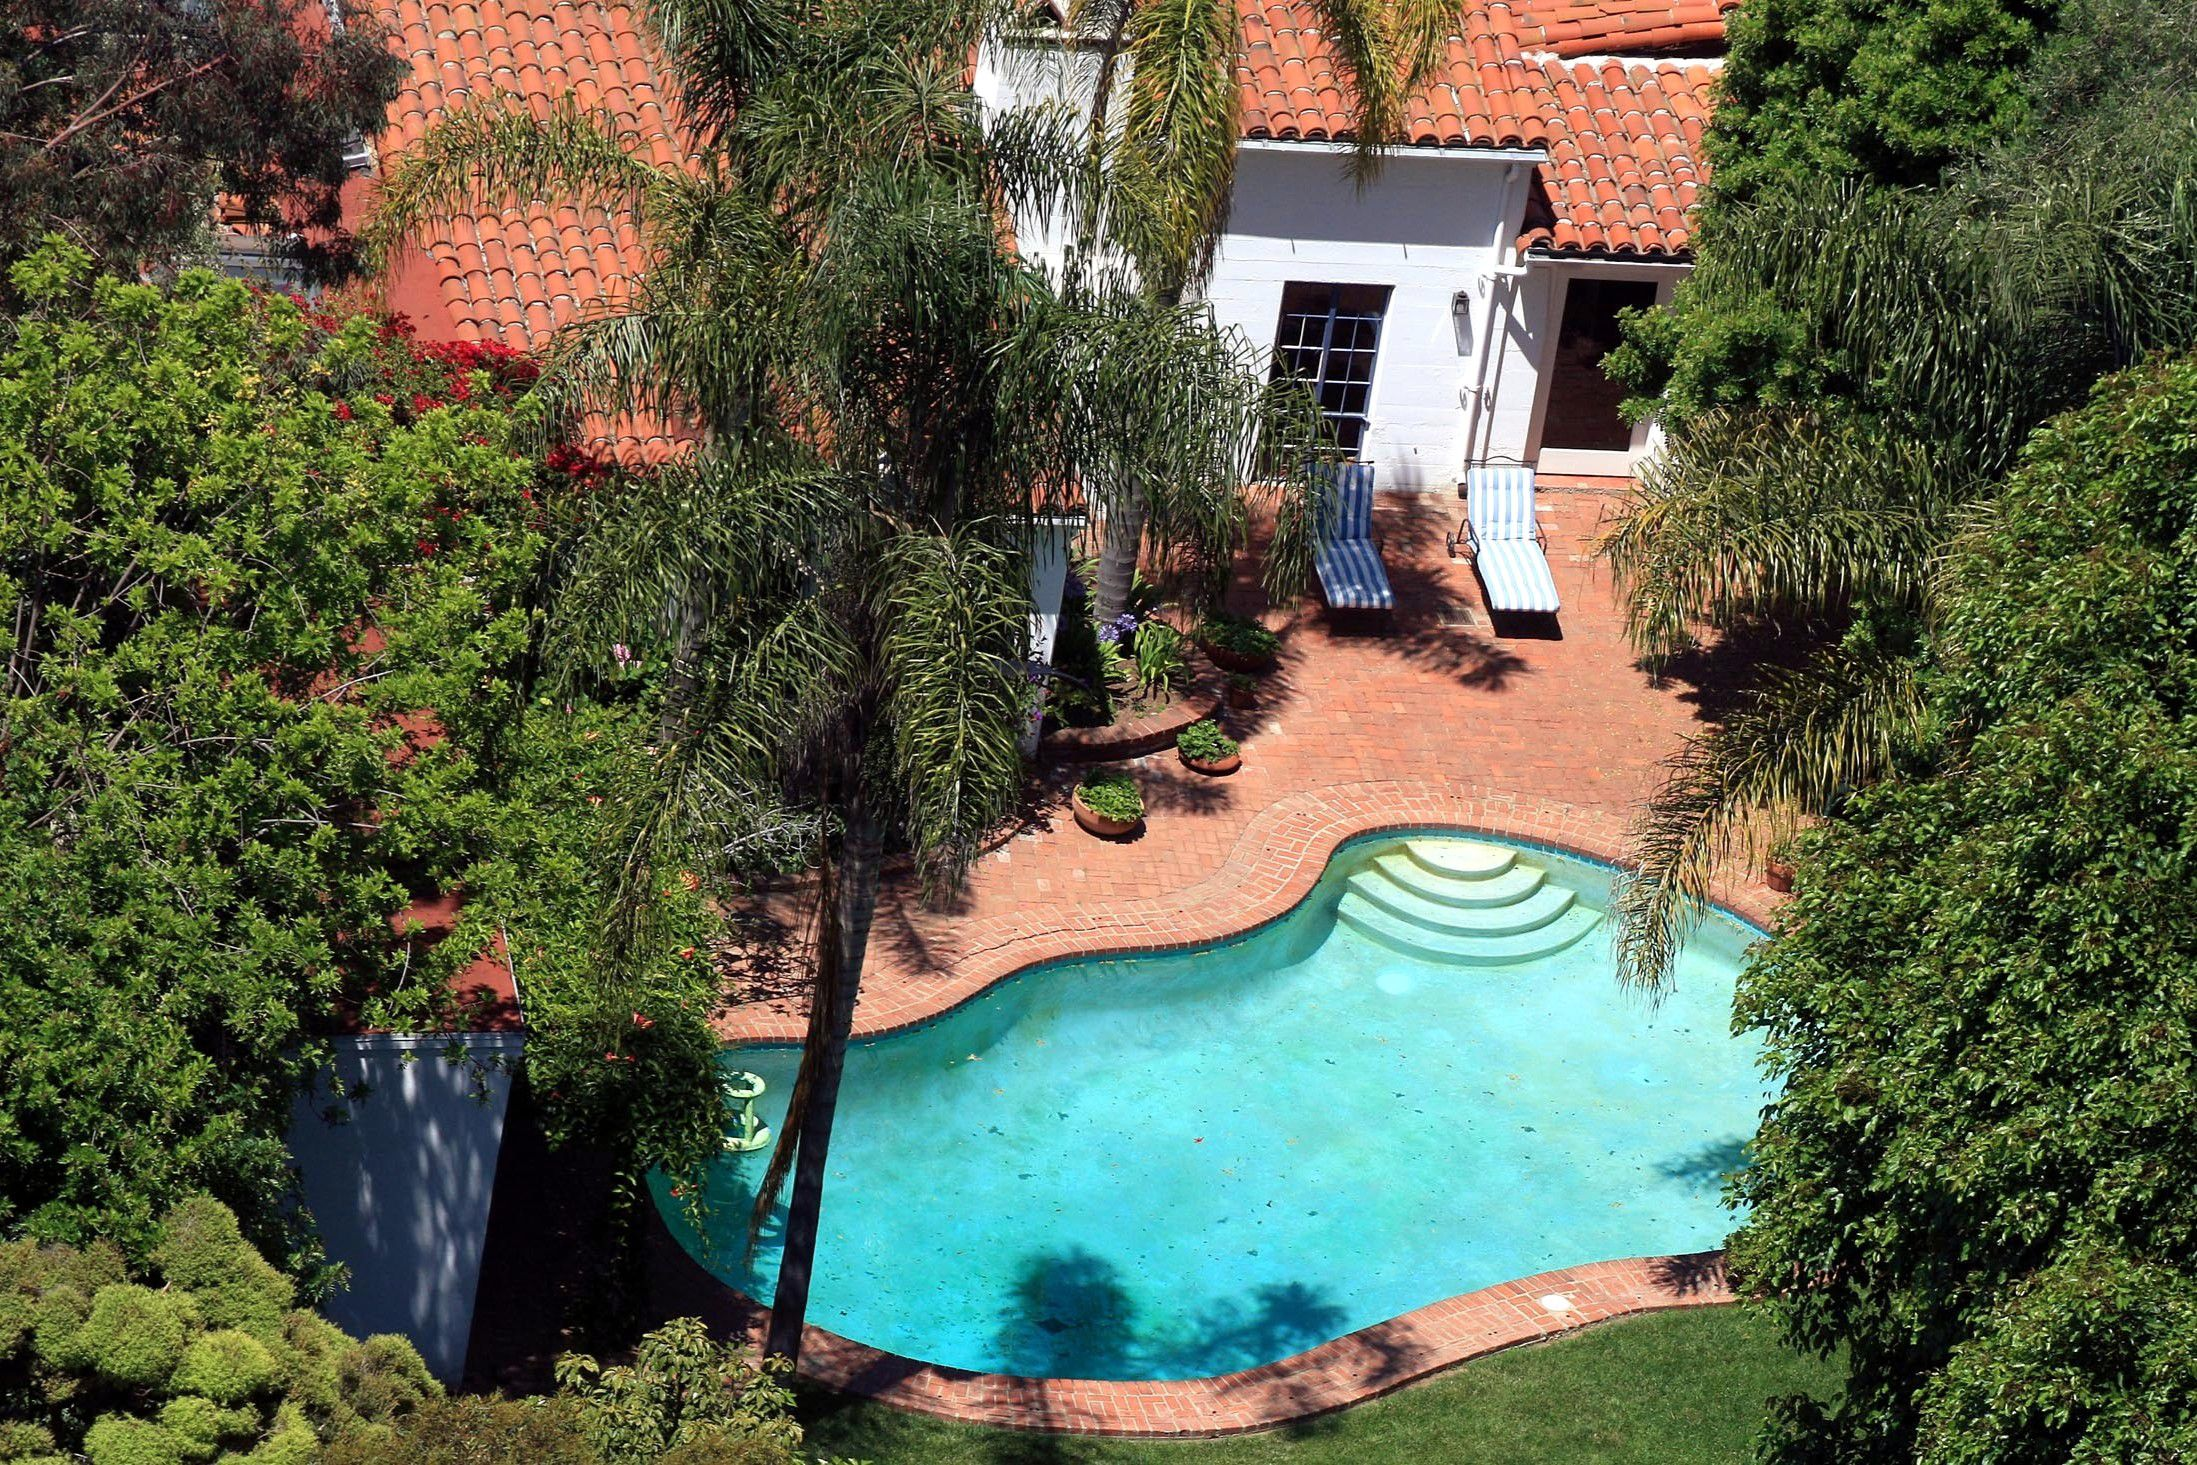 The backyard and pool of Monroe's Brentwood home